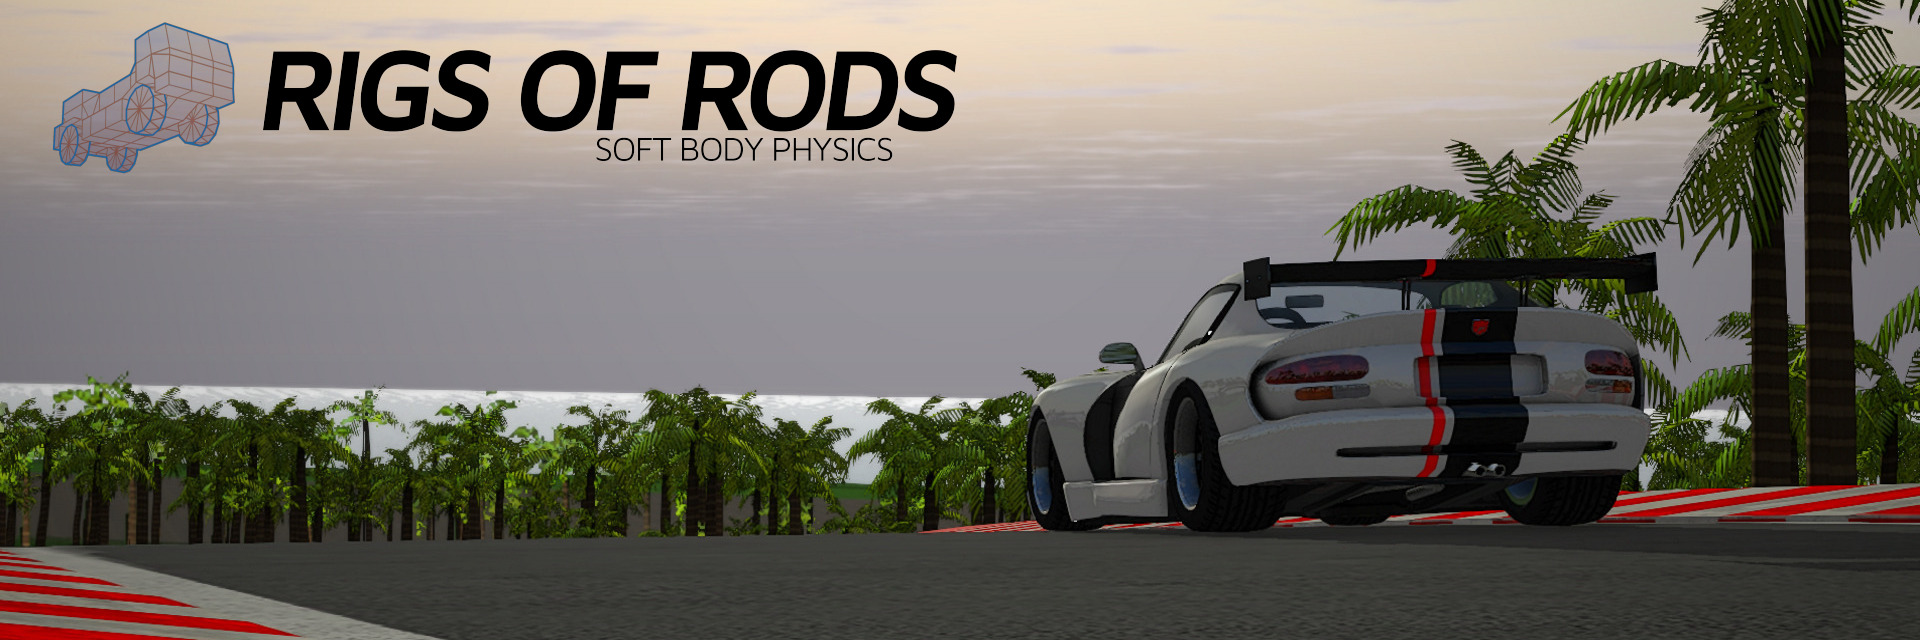 Rigs of Rods banner